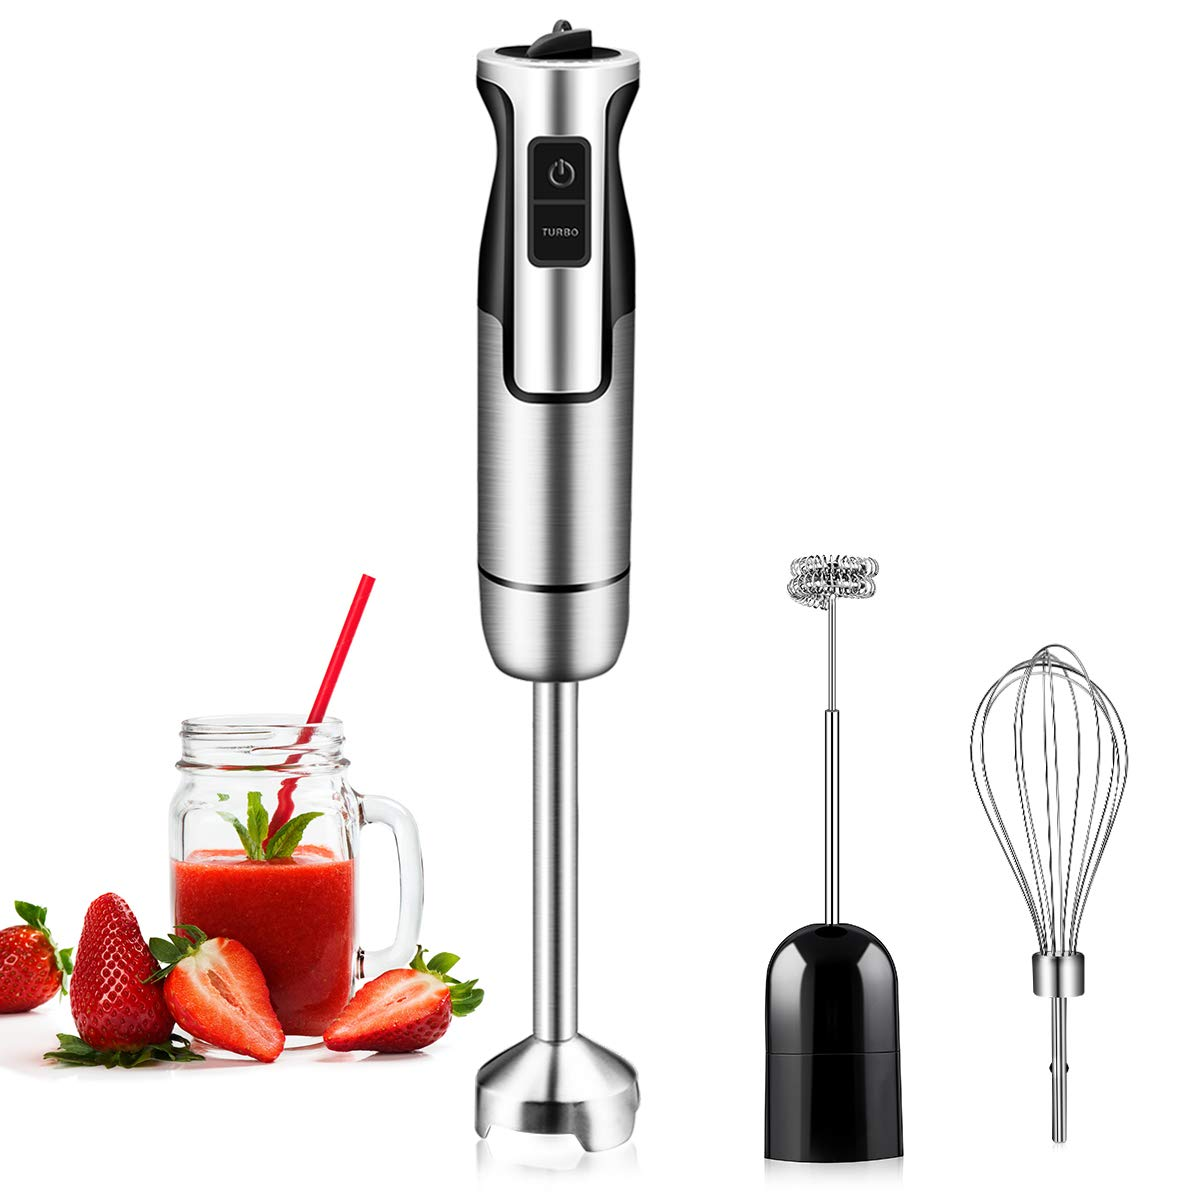 REDMOND Immersion Hand Blender, 3-in-1 8-Speed Stick Blender with Milk Frother, Egg Whisk for Smoothies, Coffee Milk Foam, Puree Baby Food, Sauces and Soups, HB004SSUSRD